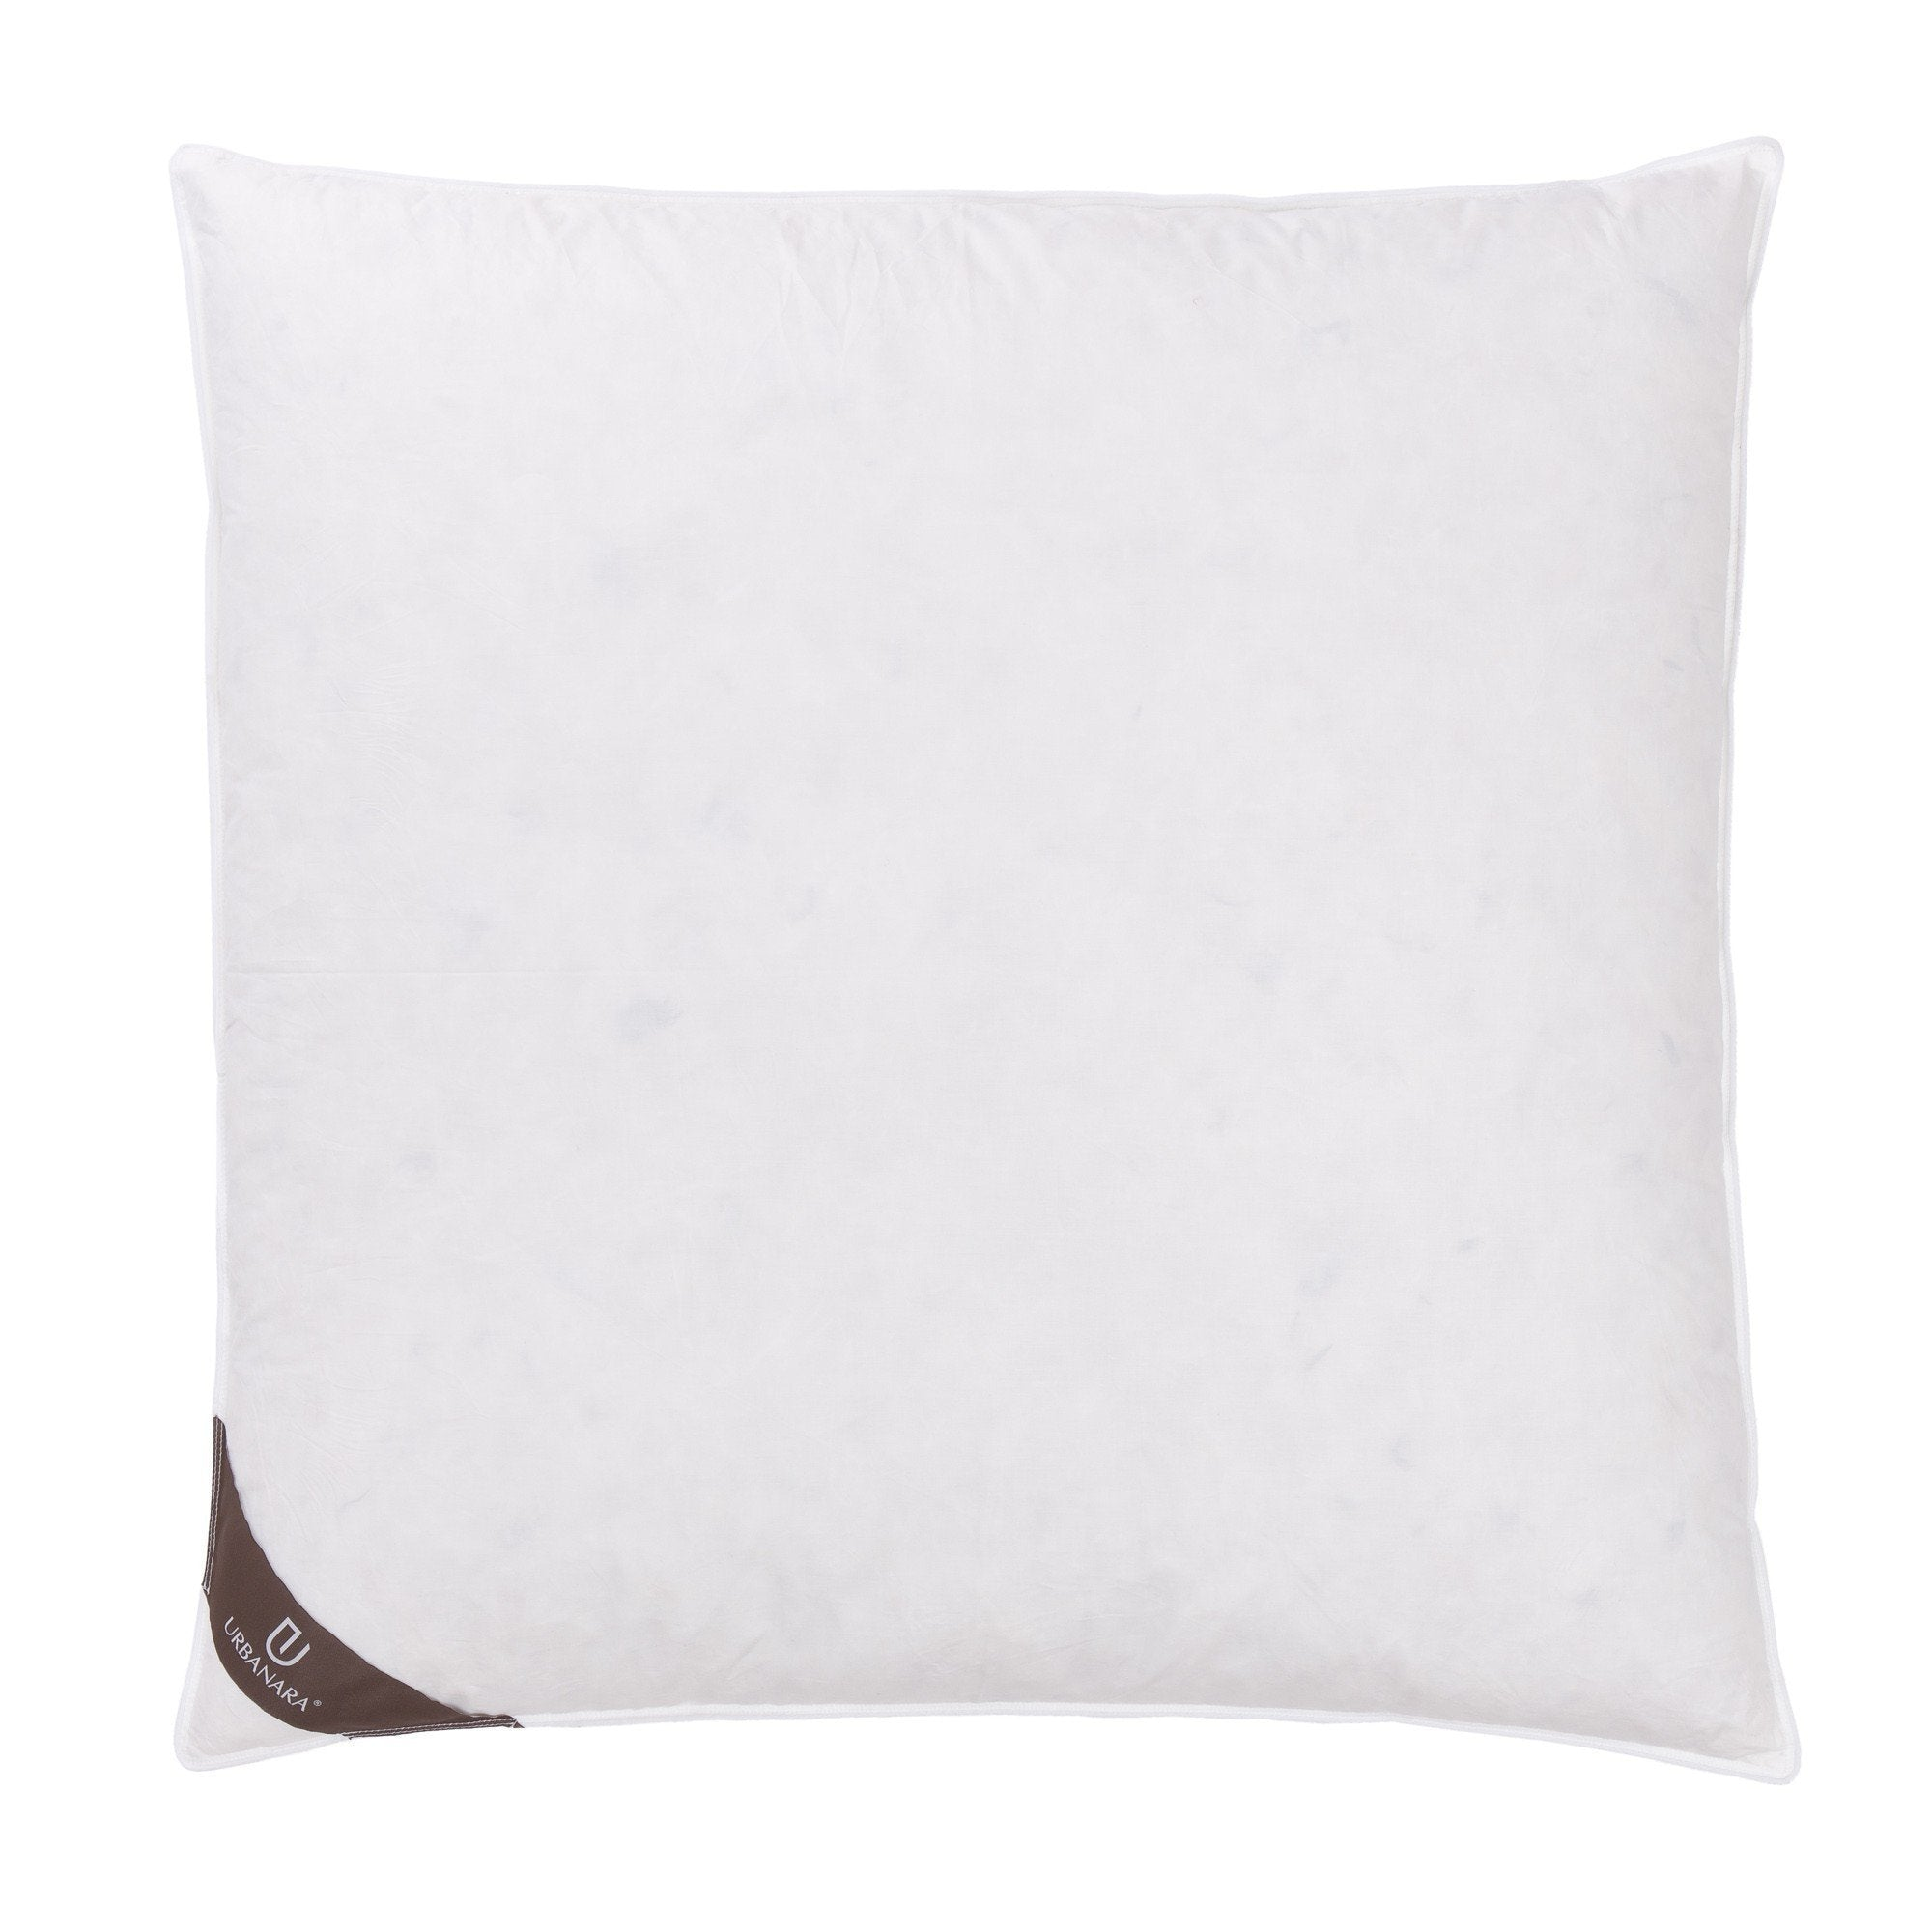 Trige pillow, white, 80% goose feathers & 20% goose down & 100% cotton